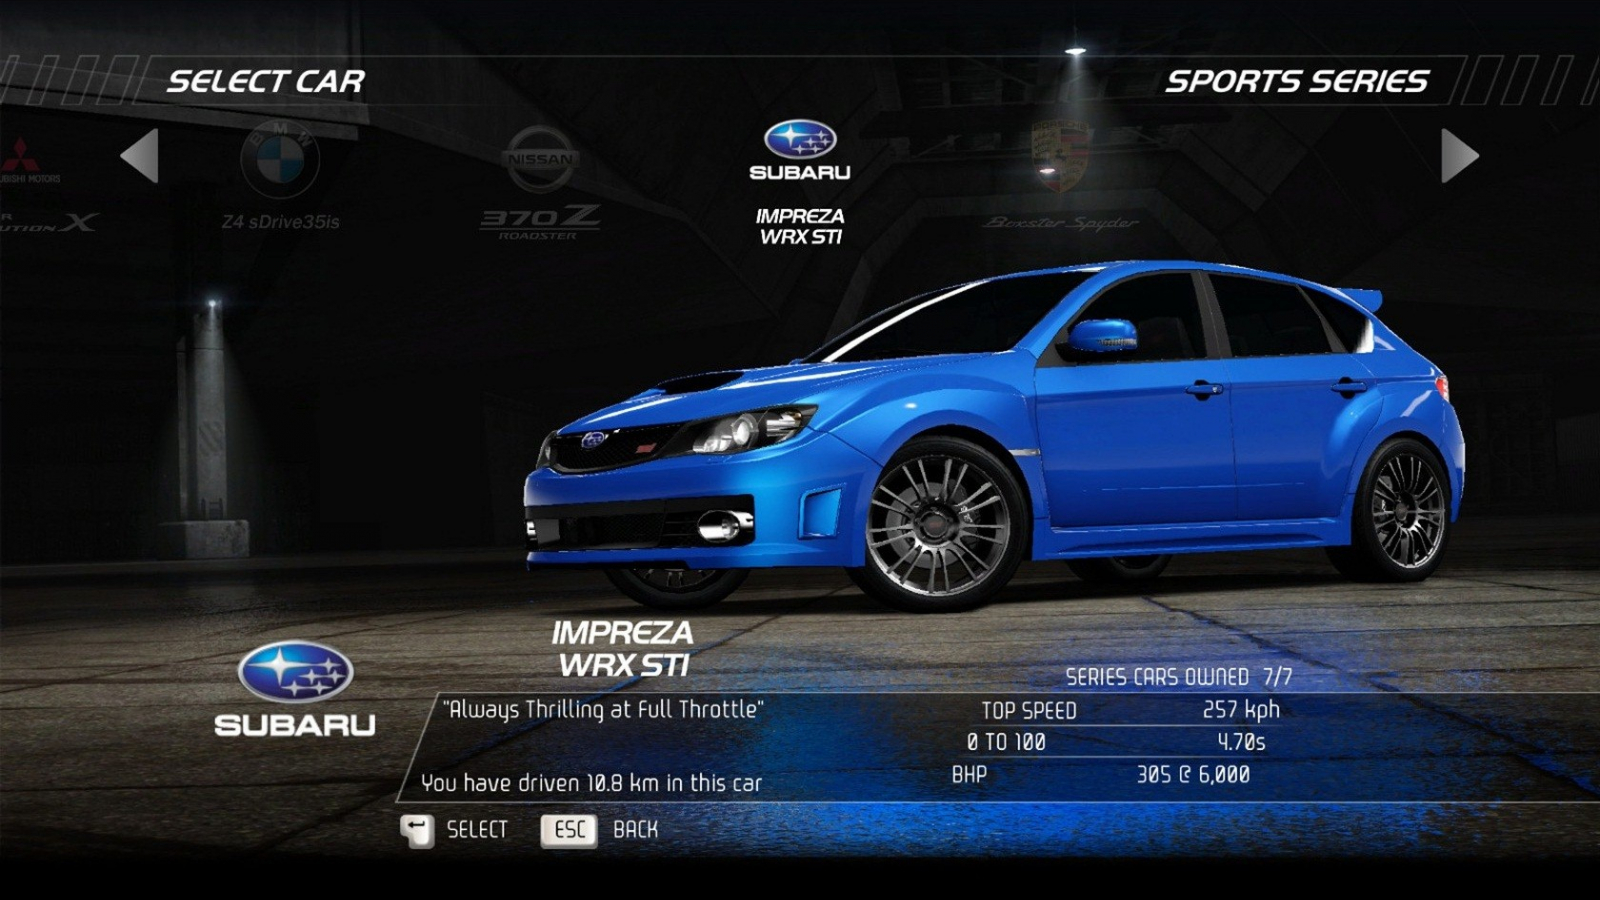 Free Download Sti Subaru Wallpaper 1680x1050 Sti Subaru Impreza